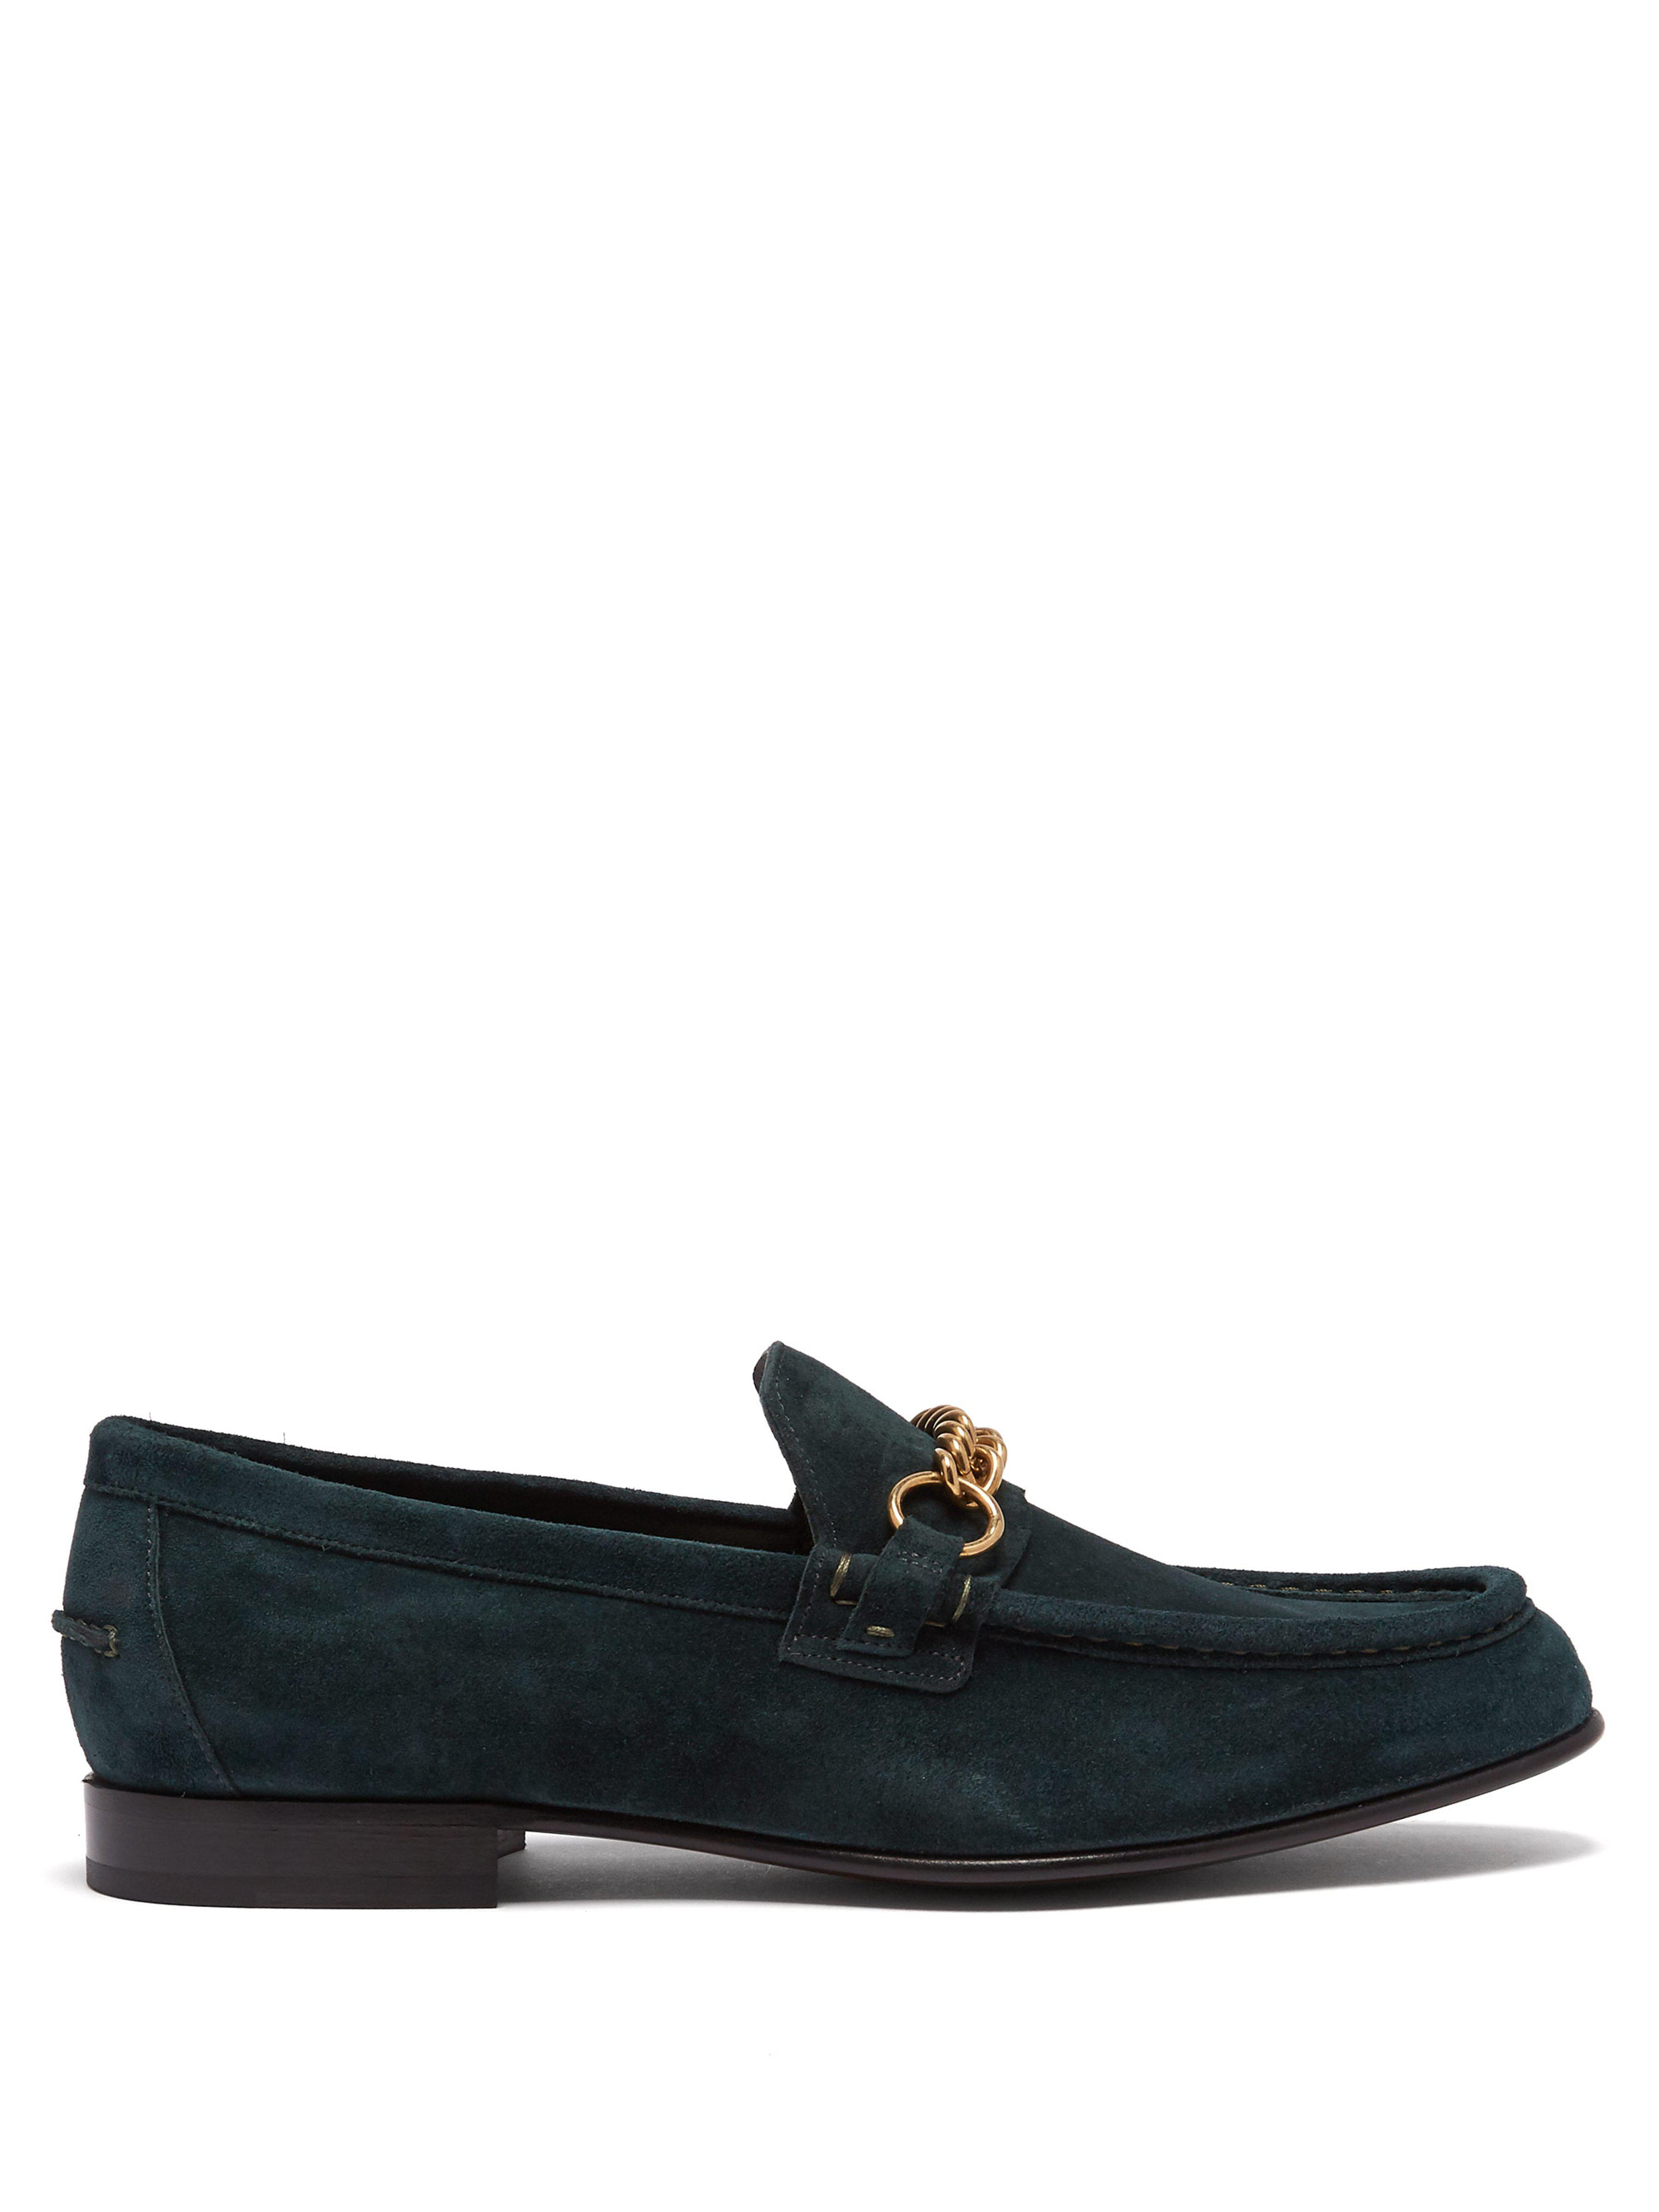 43662dc508e Burberry Solway Chain Suede Loafers in Green for Men - Lyst